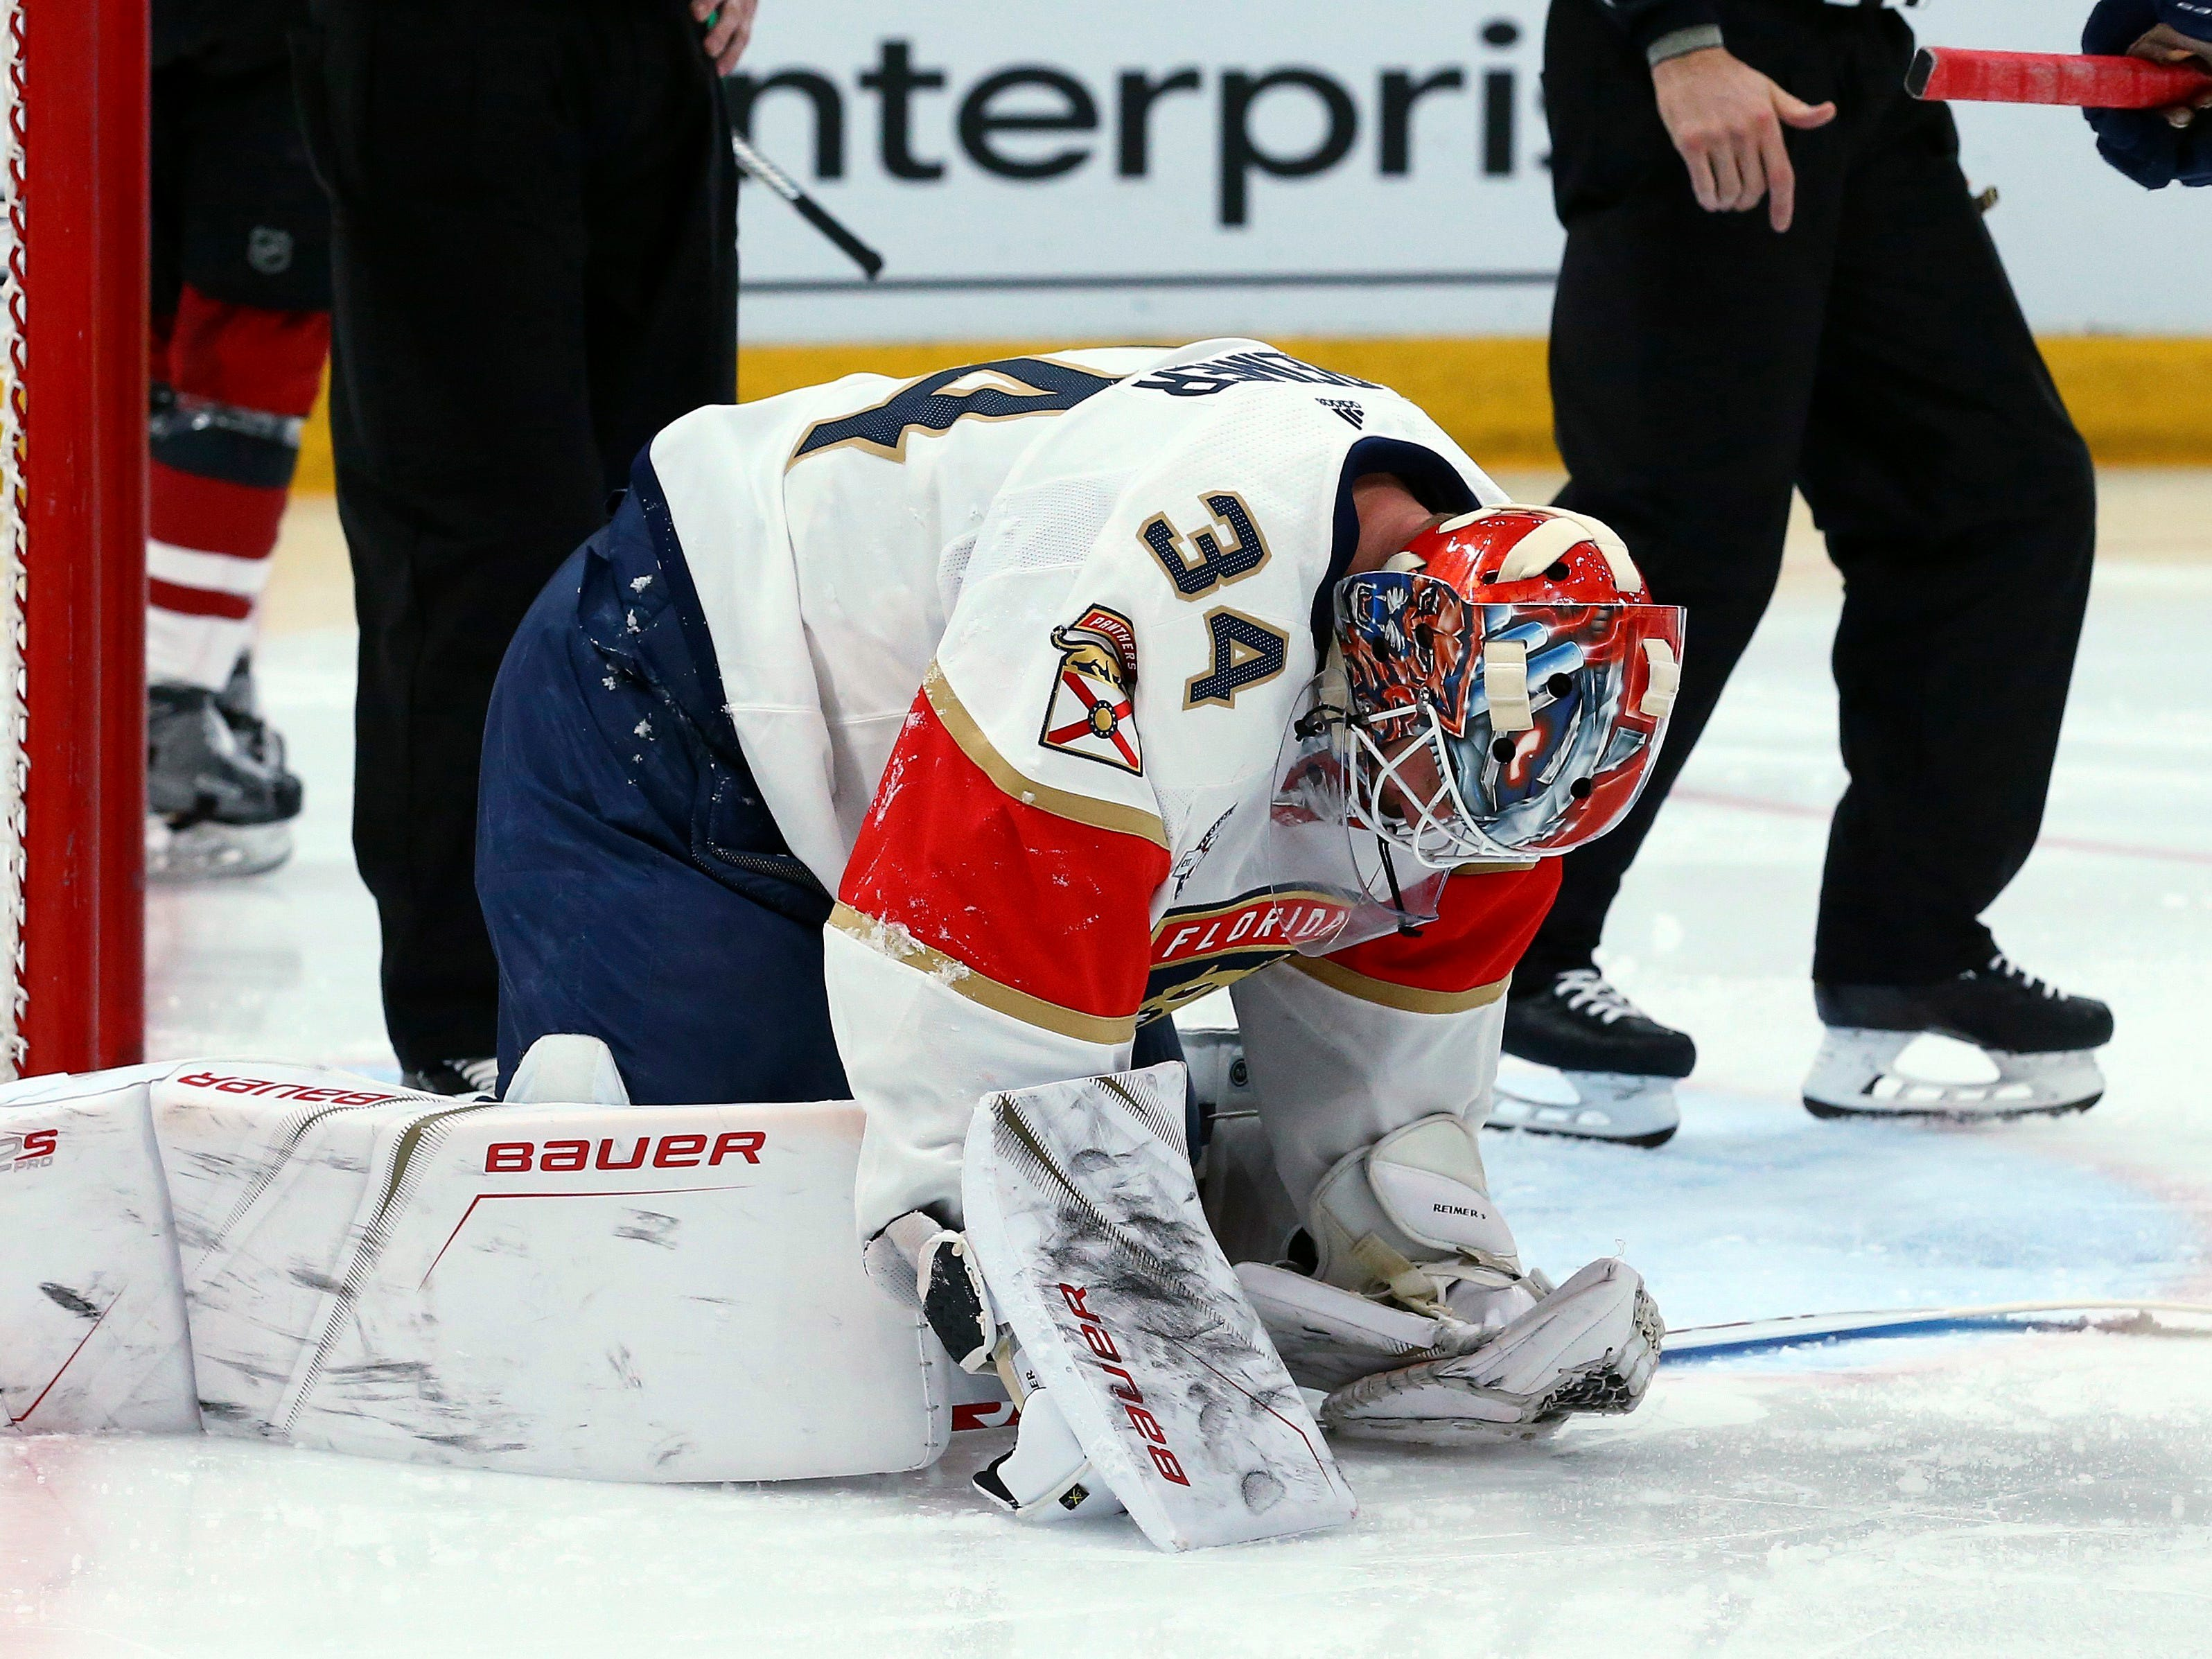 An injured Florida Panthers goaltender James Reimer pauses on the ice during the second period of the team's NHL hockey game against the Arizona Coyotes on Tuesday, Feb. 26, 2019, in Glendale, Ariz. Reimer left the game.